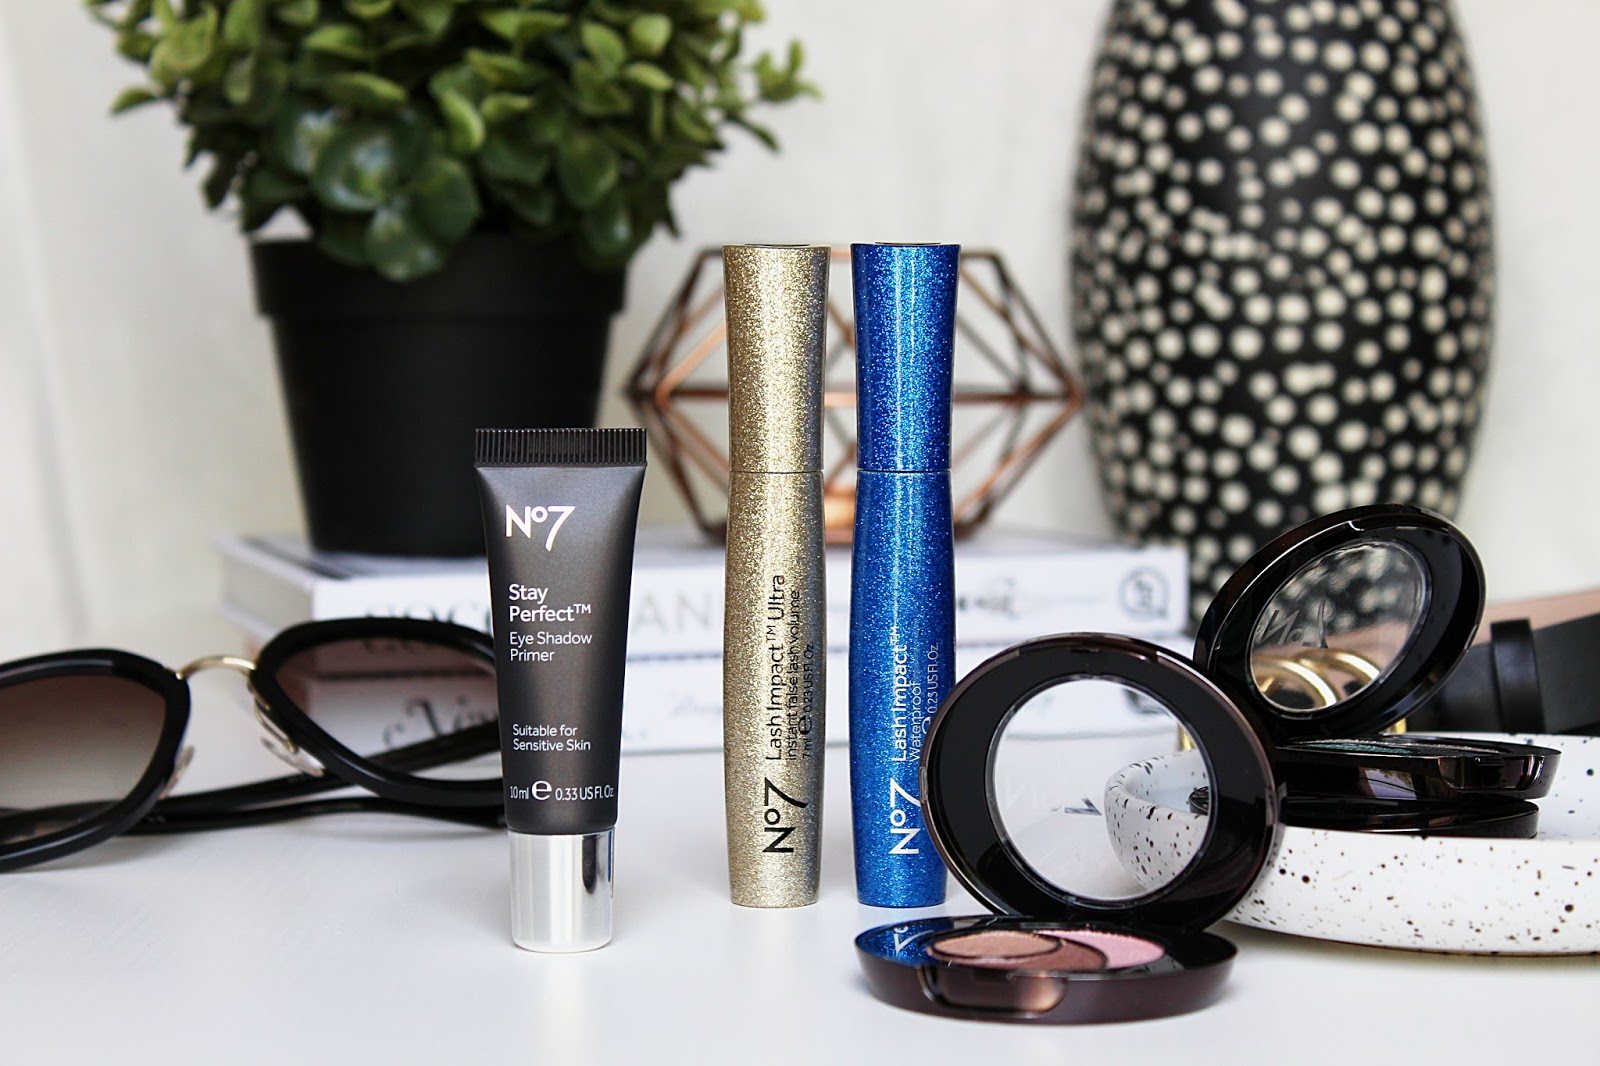 NO7 Boots Makeup Products Review & Swatches